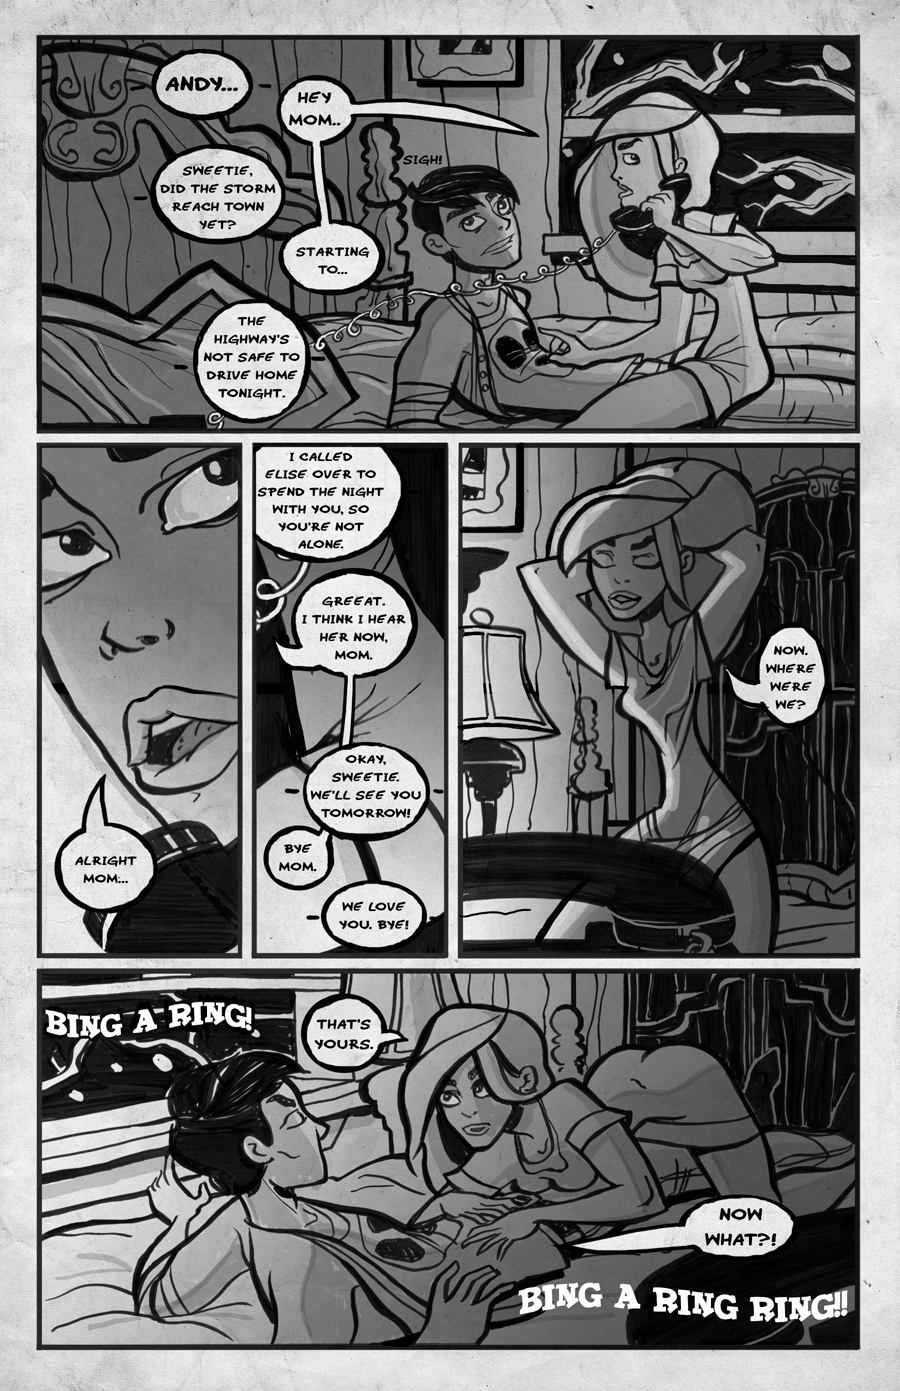 Blood page 8